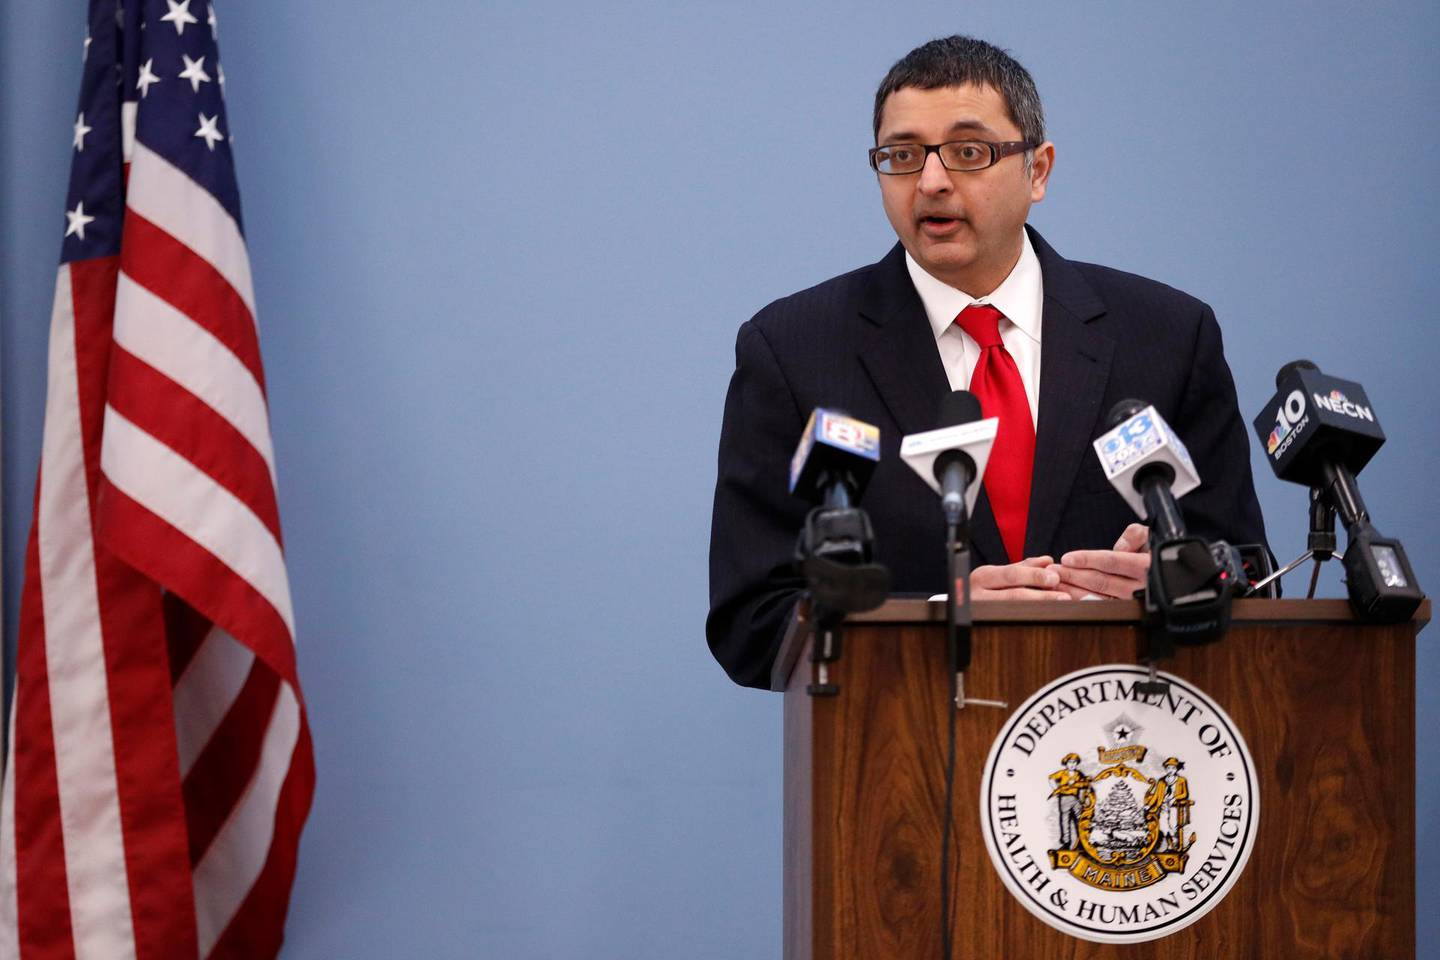 Dr. Nirav Shah, director of the Maine Center for Disease Control and Prevention, speaks at a news conference Monday, March 16, 2020, in Augusta, Maine. Shah announced that there are five new cases of coronavirus, bringing the total in Maine to 17. (AP Photo/Robert F. Bukaty)